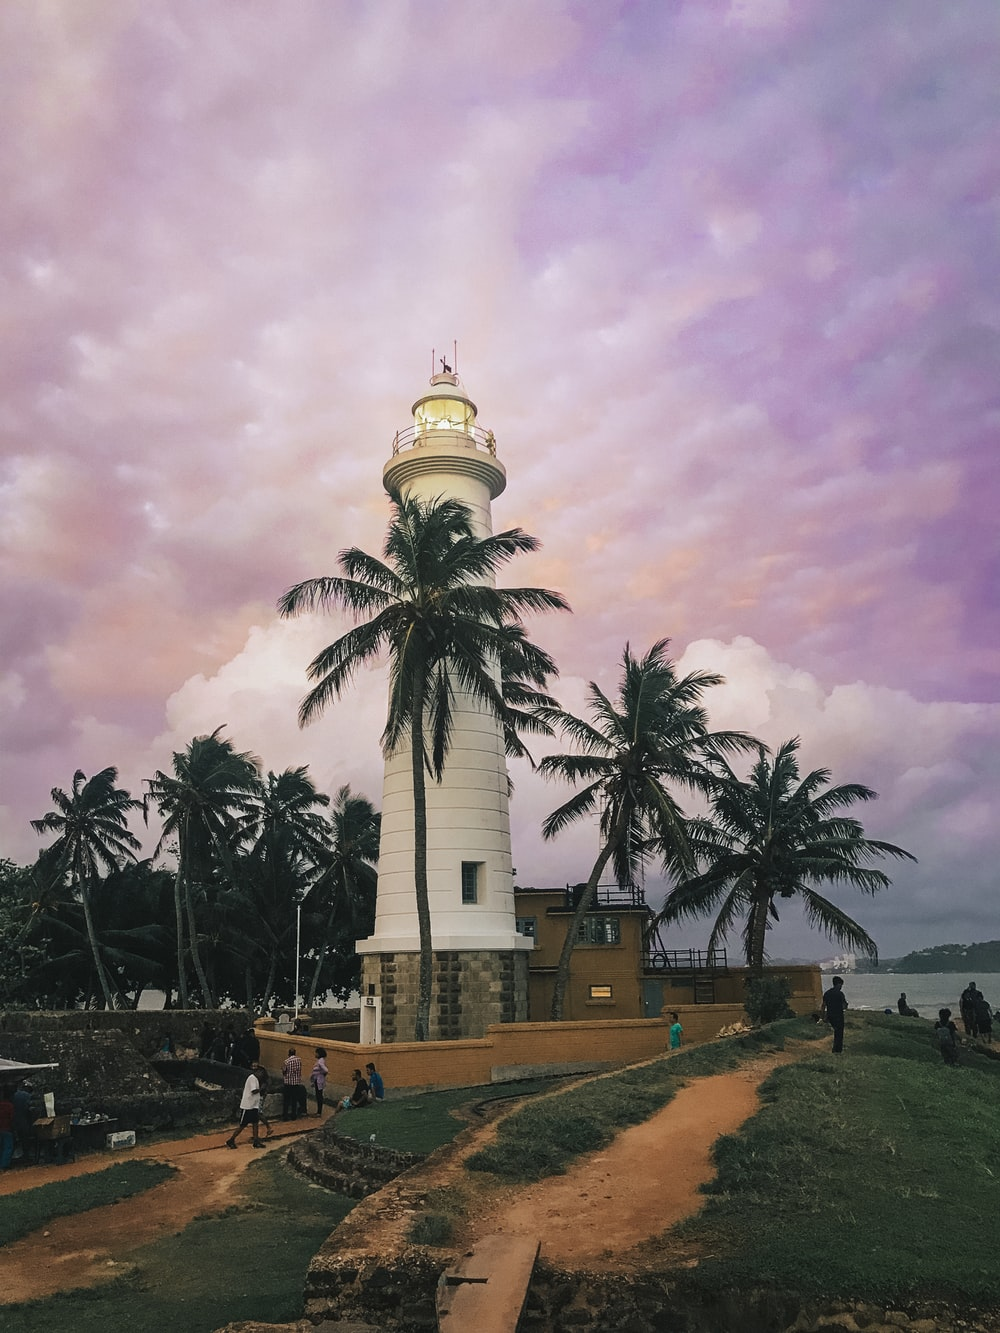 lighthouse tower under cloudy sky